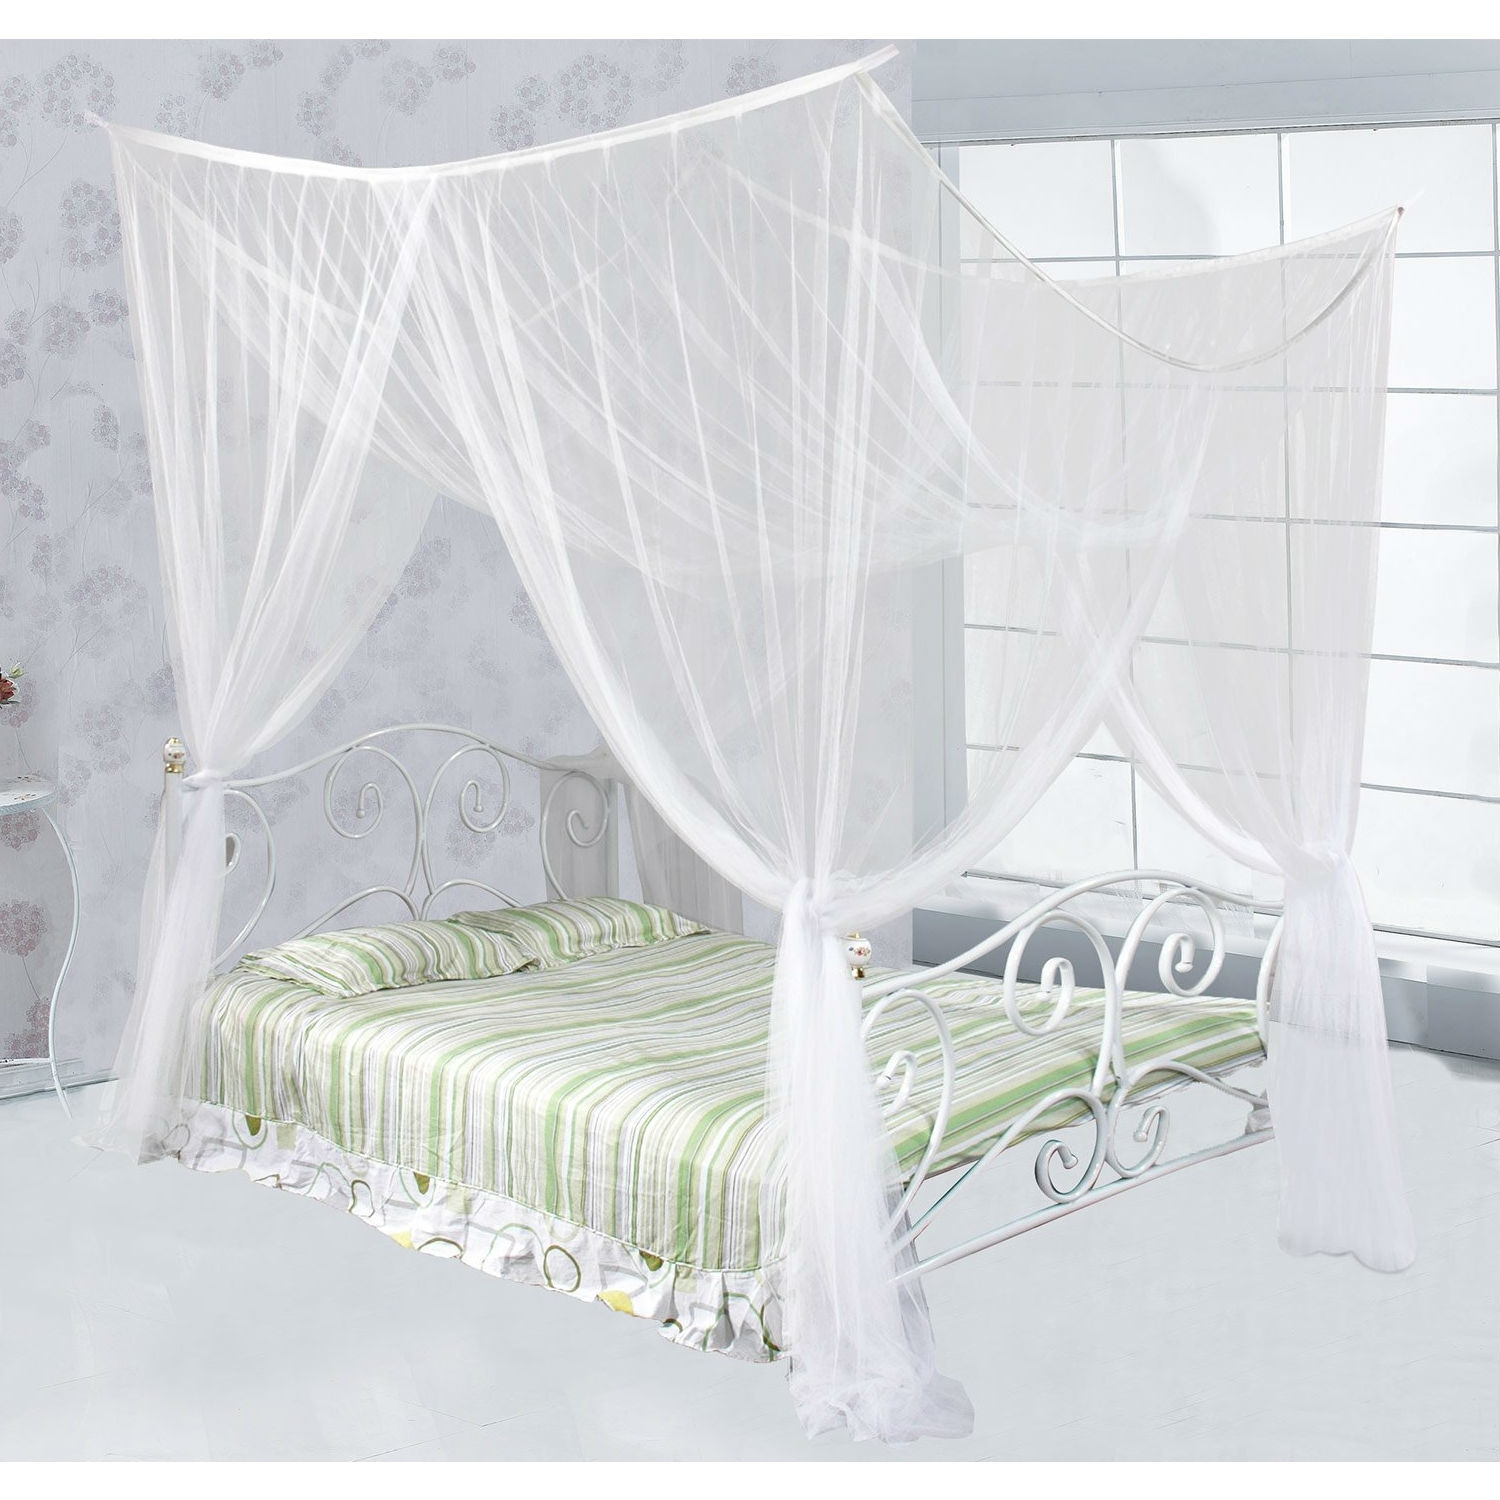 - White Mosquito Net Bed Canopy Mesh Netting - Size Full Queen King